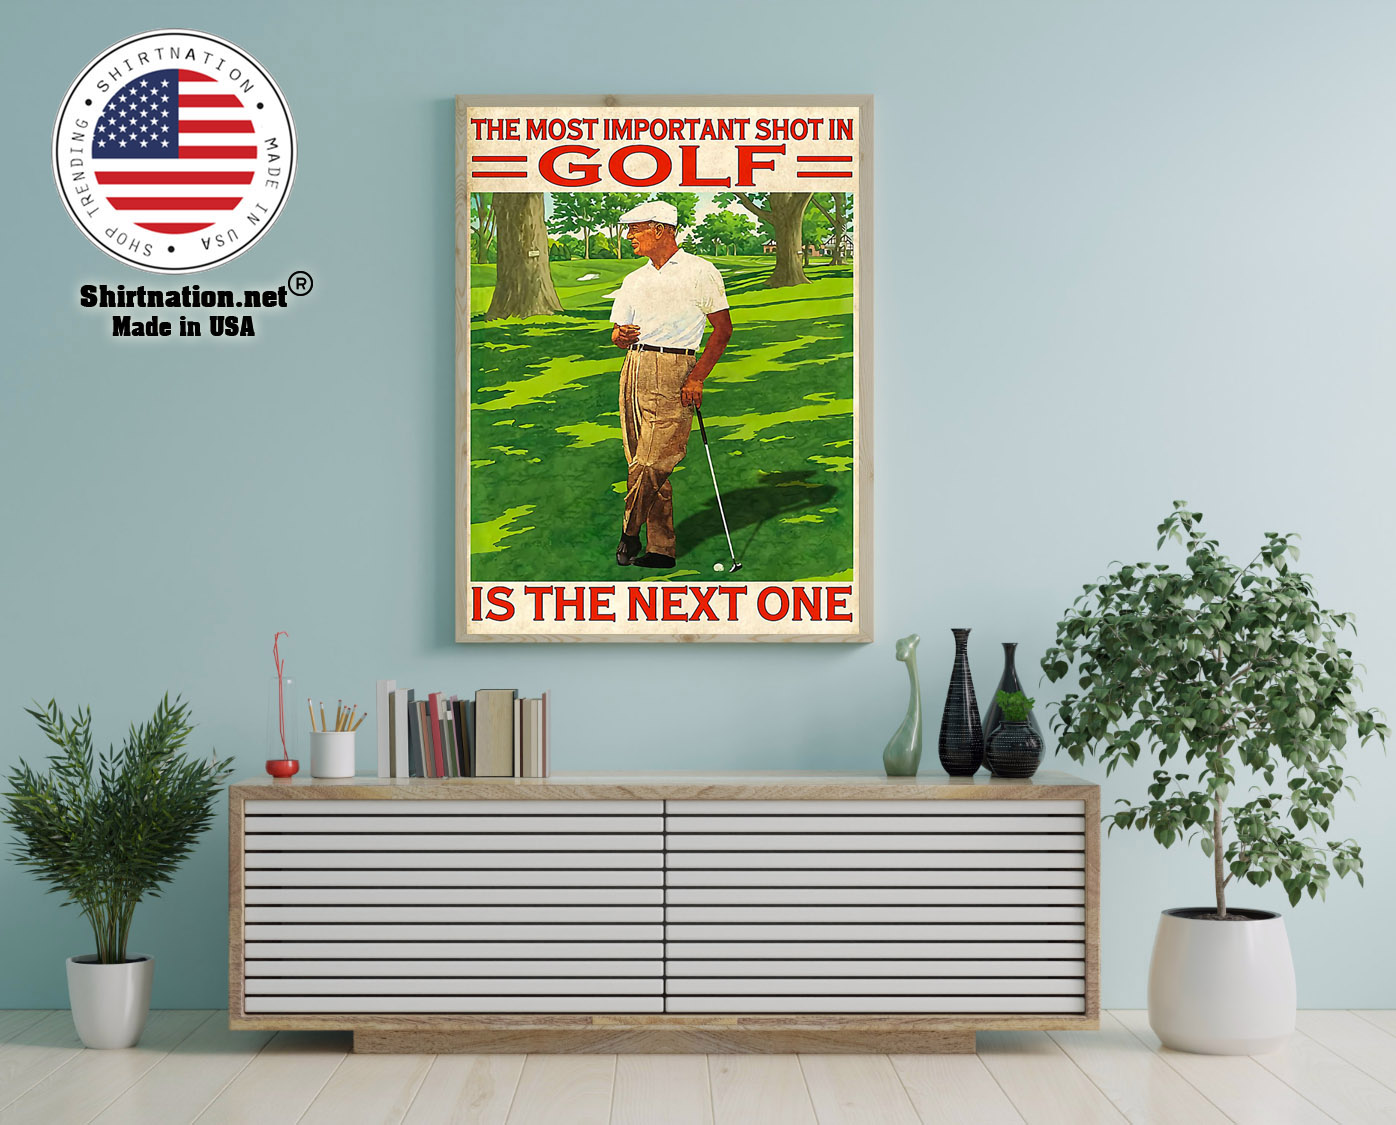 The most important shot in golf is the next one poster 12